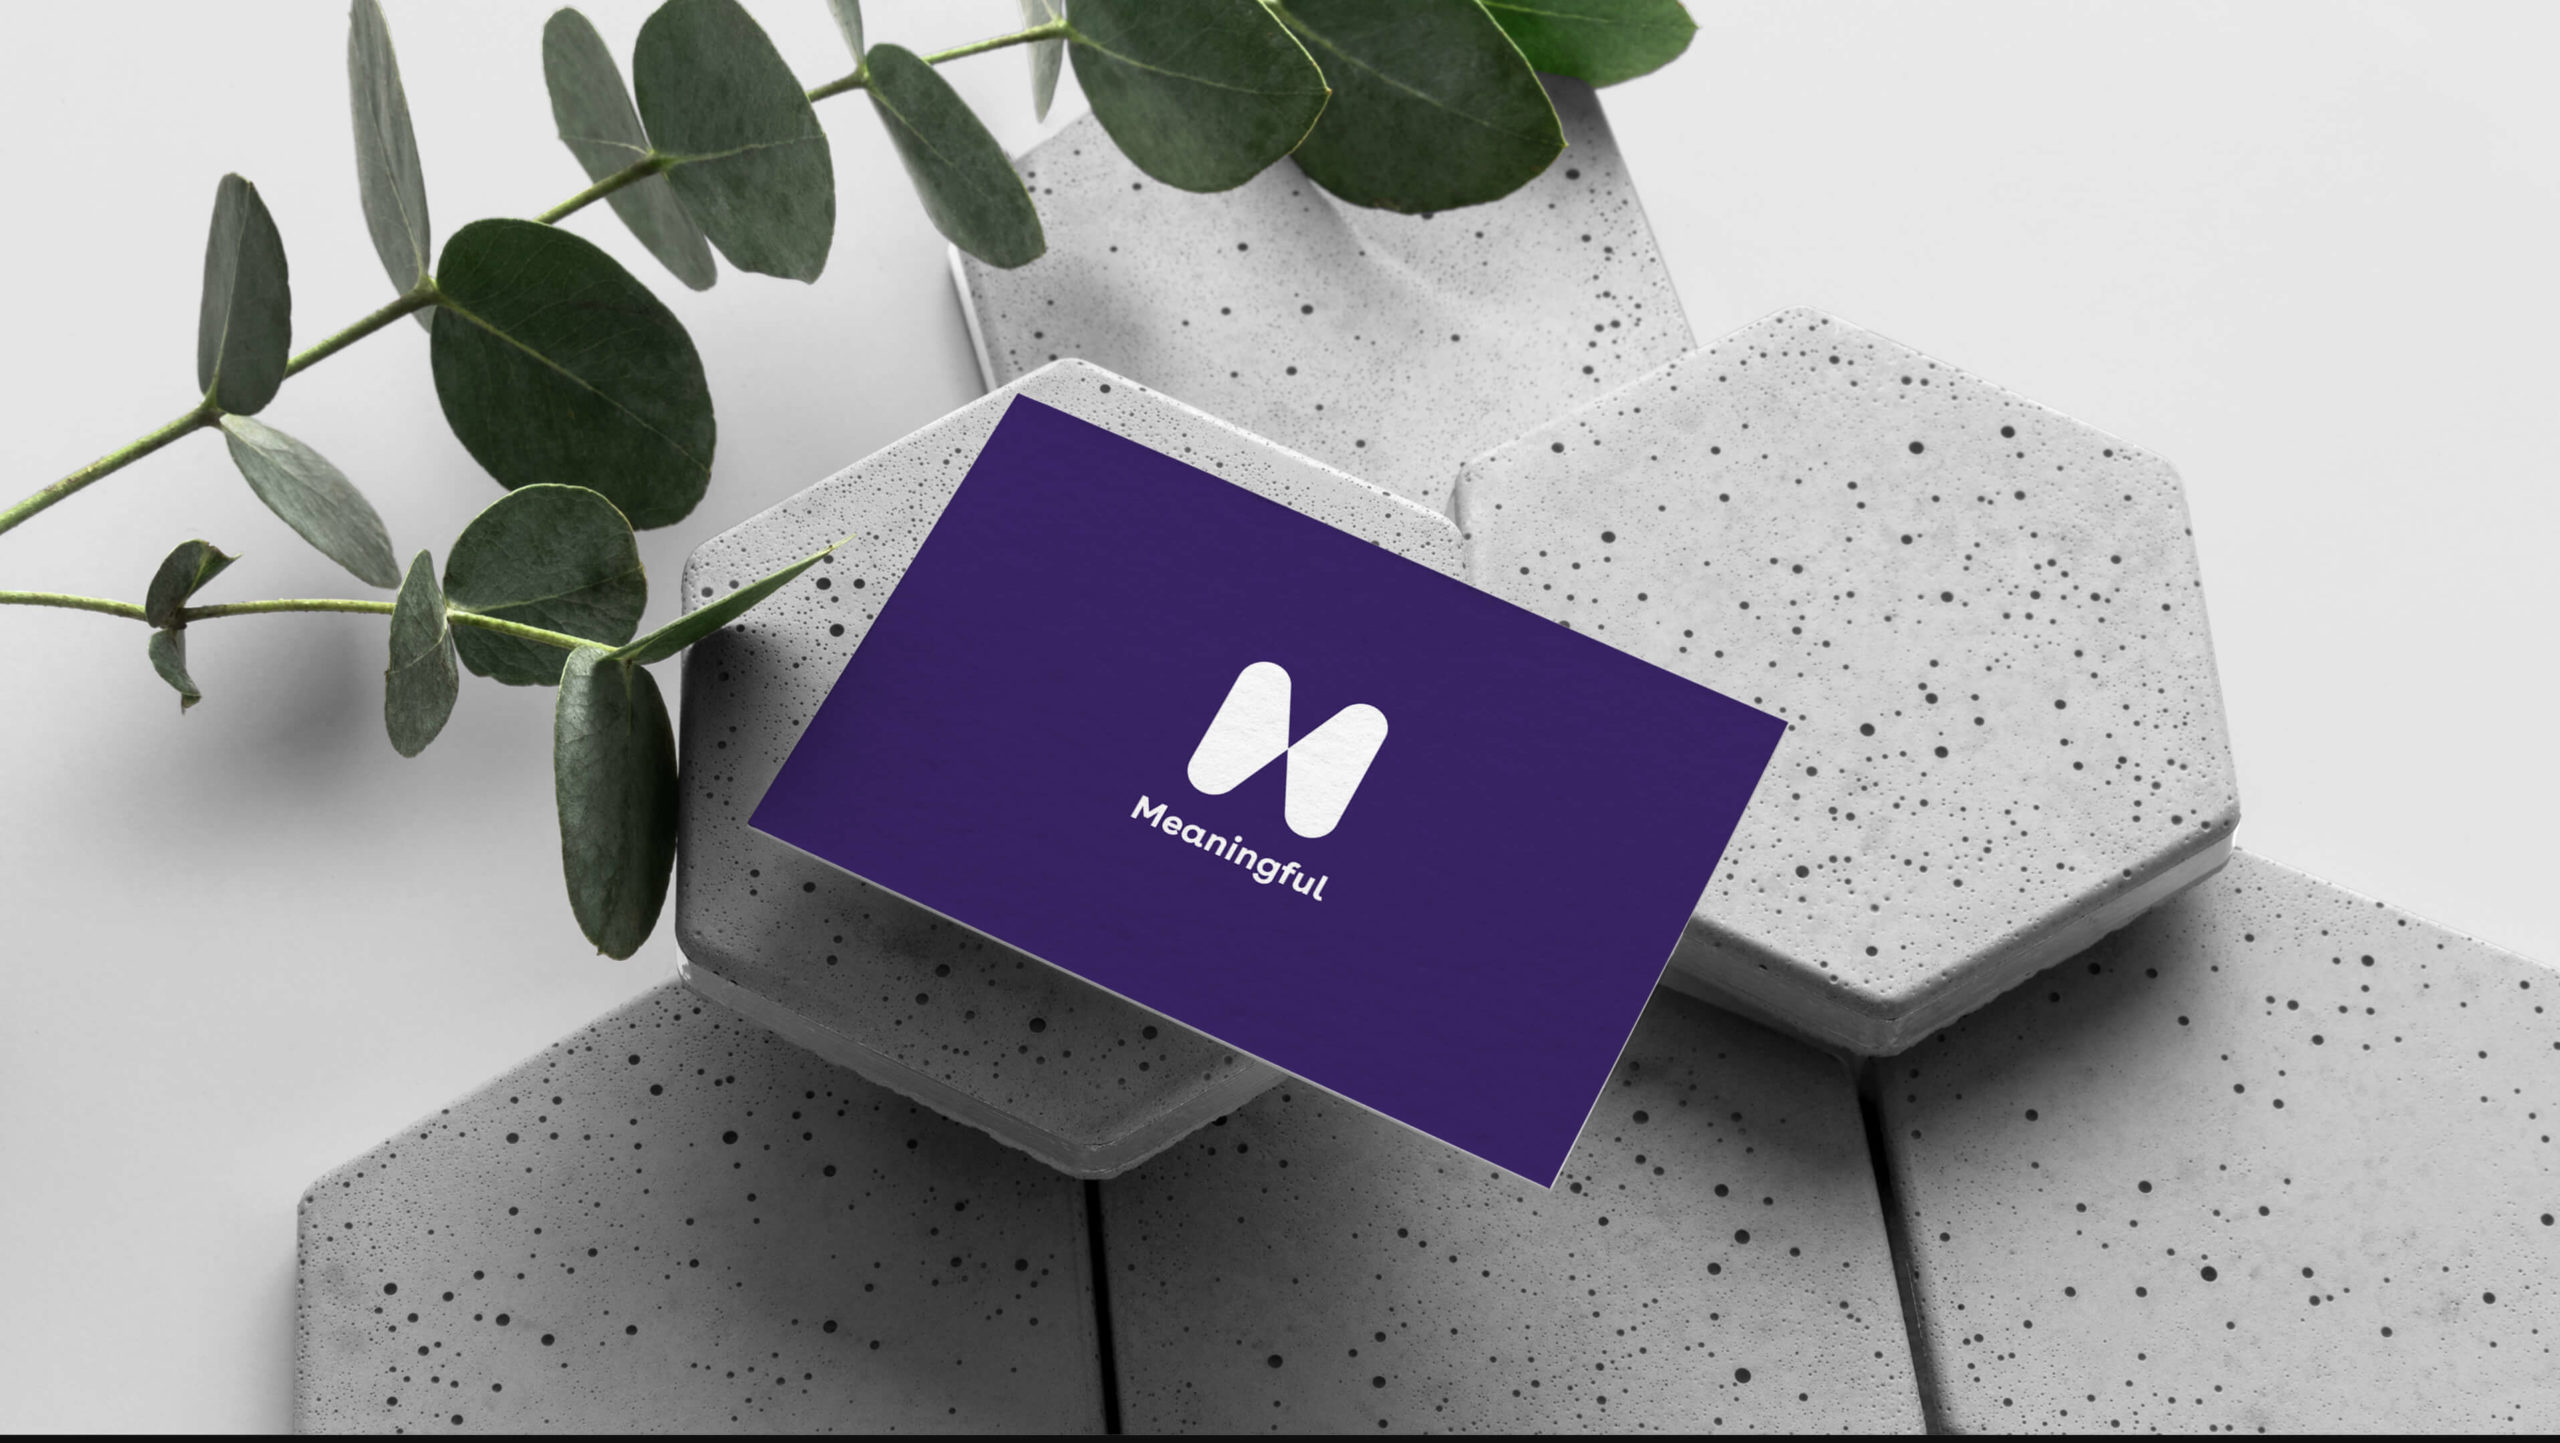 Meaningful_business-card